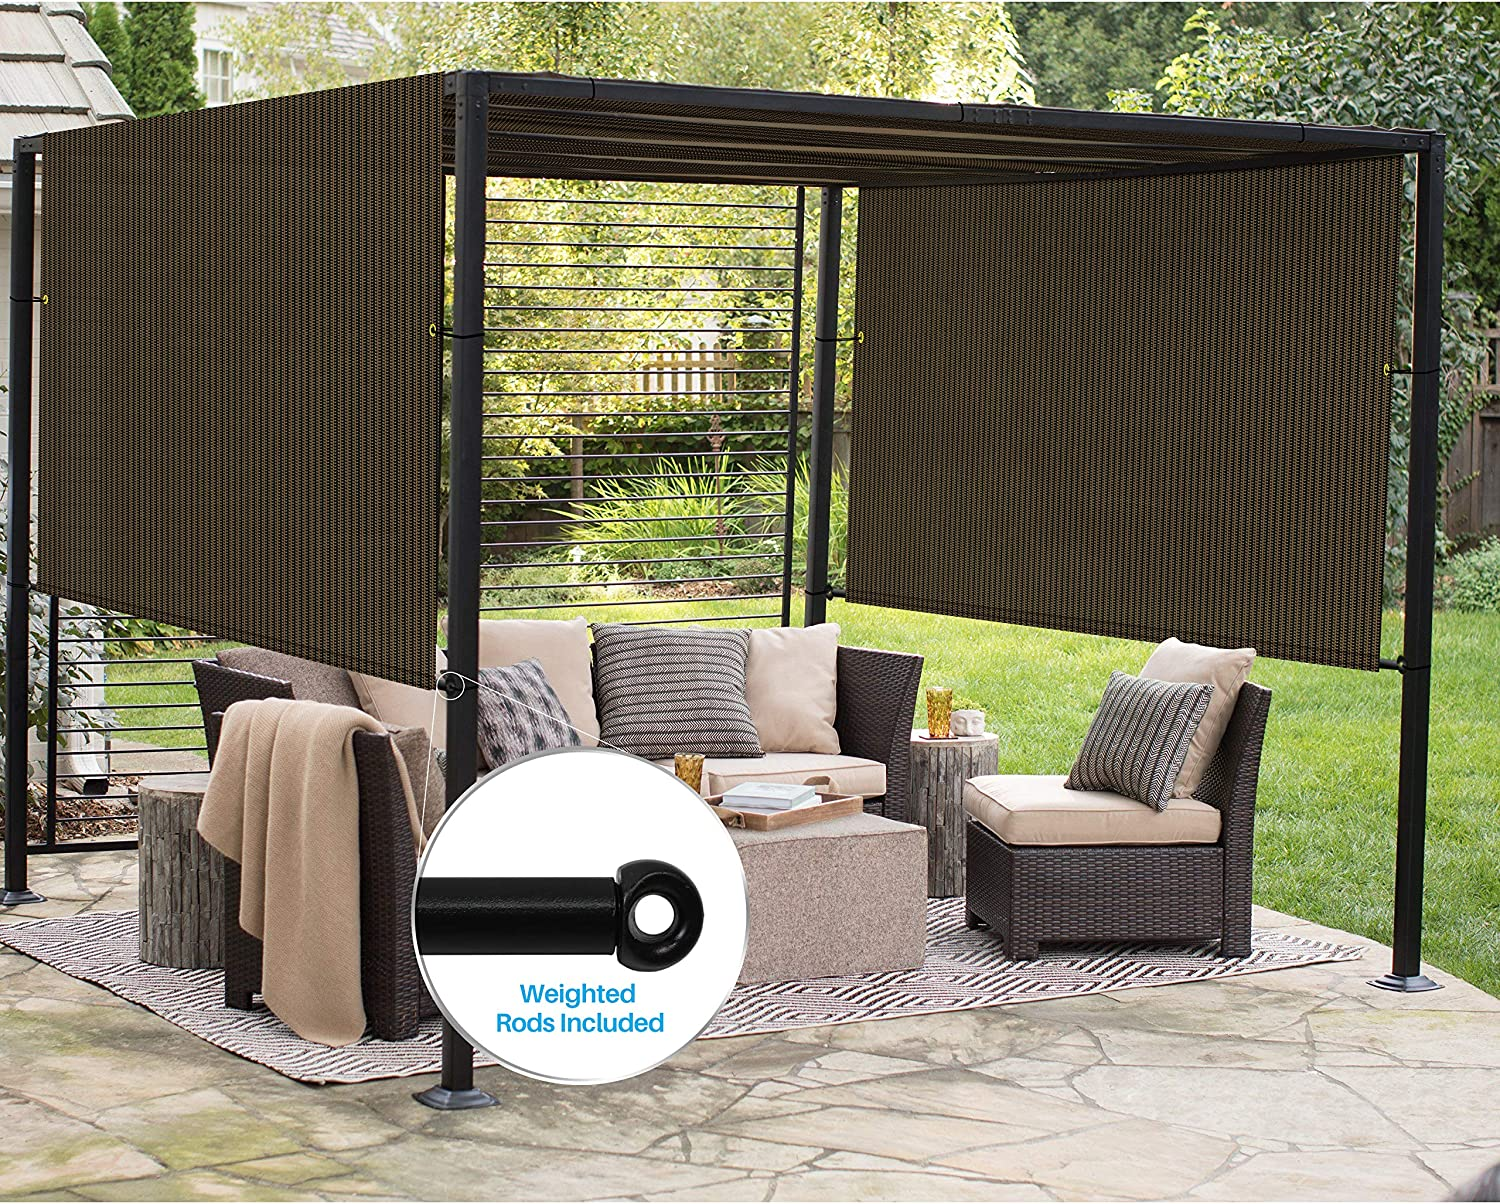 Patio Outdoor Shade Universal Replacement Pergola Canopy Cover 10'x4' Brown with Grommets 2 Sides Weighted Rods Included Shade Screen Panel for Balcony Deck Porch